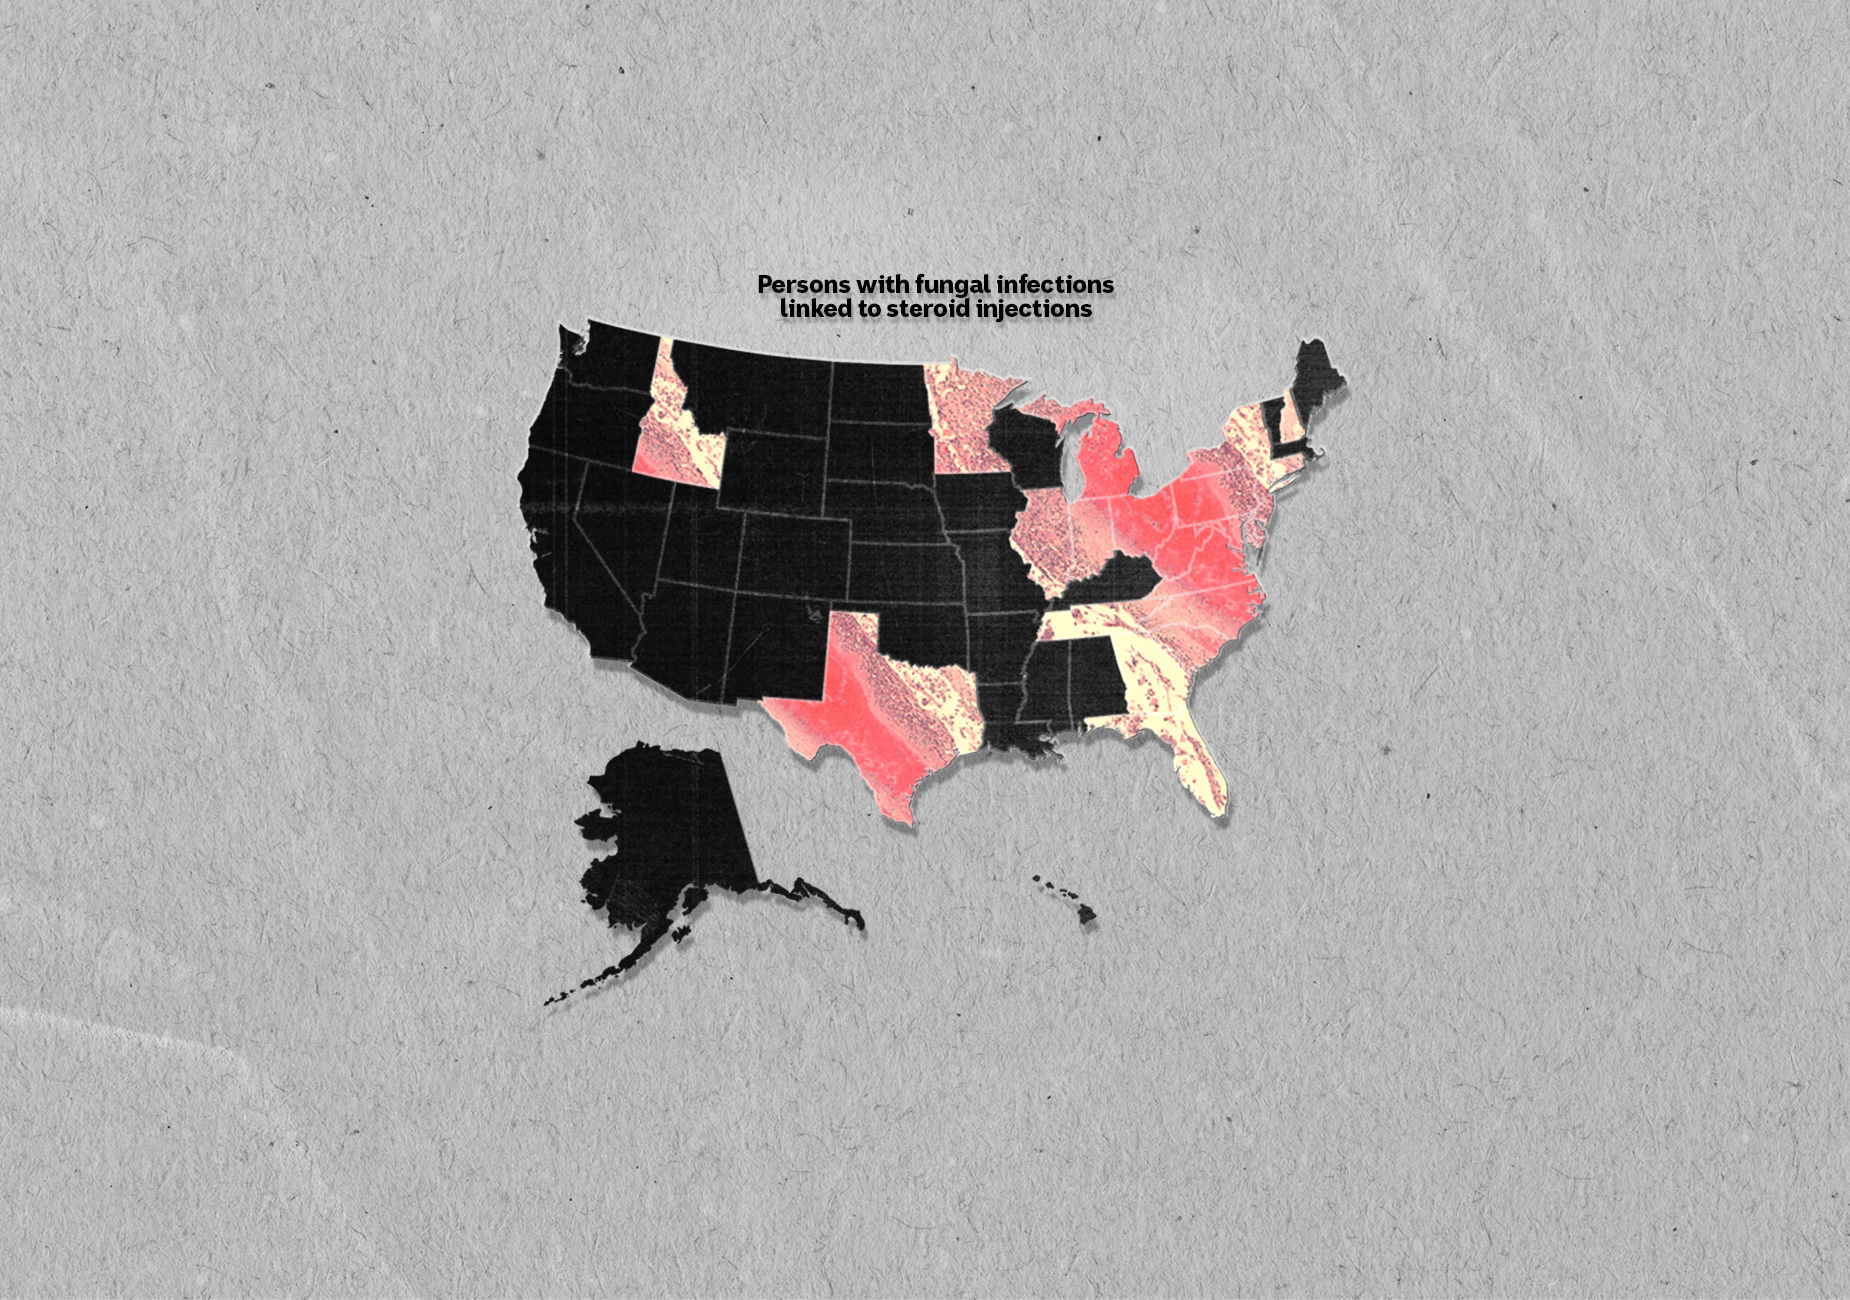 Pink bacteria image overlaid on various US states on black vector US map on grey paper background.